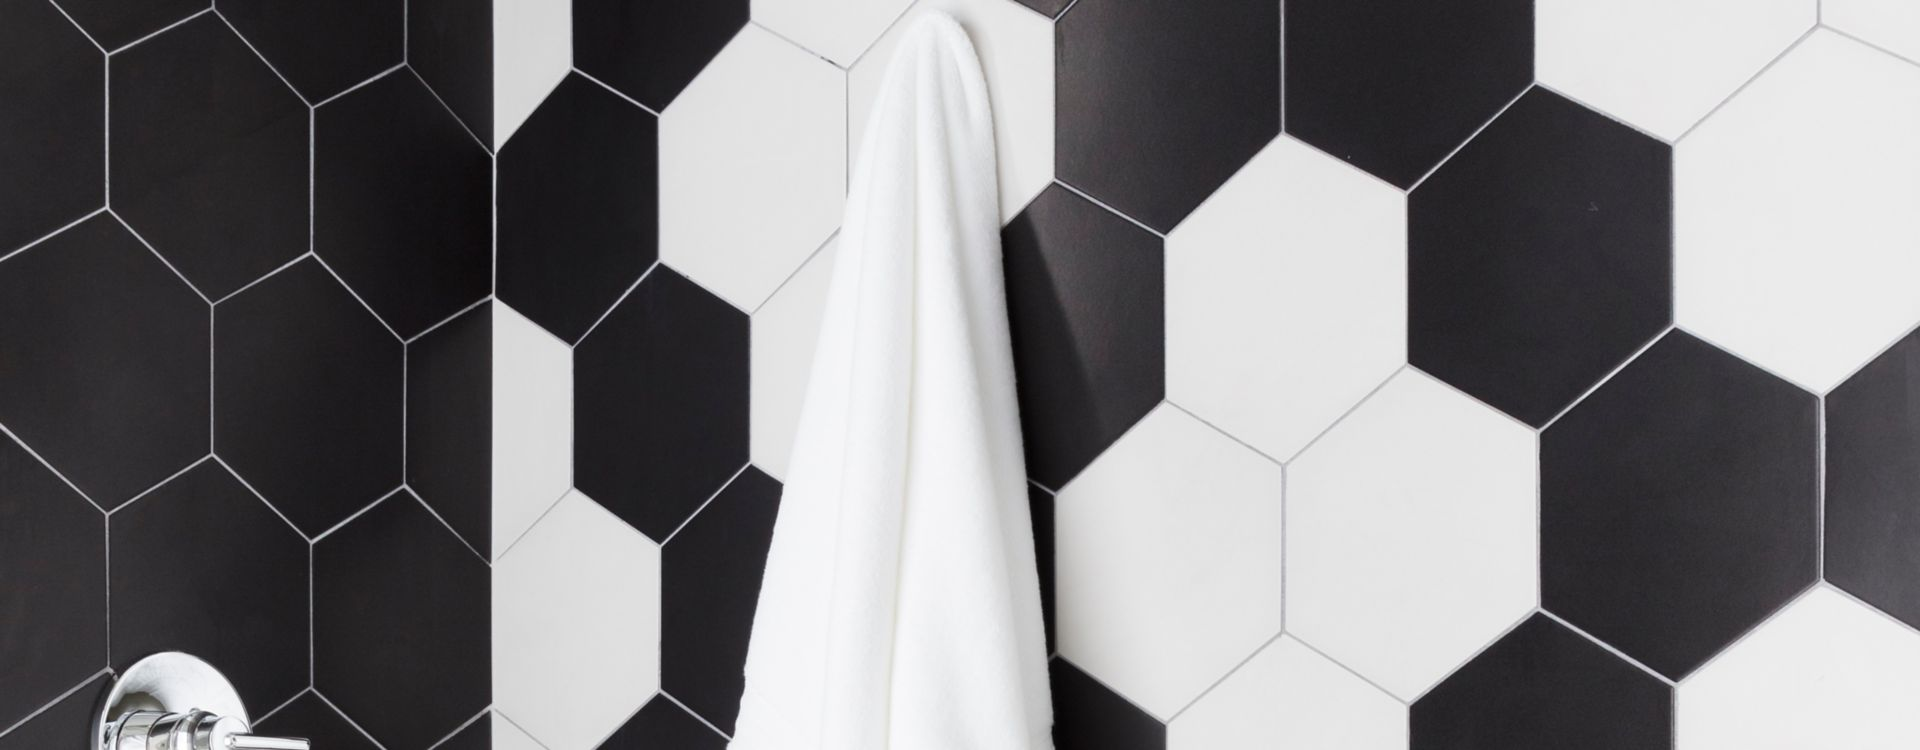 Tile Patterns For Floors Walls Backsplashes The Tile Shop